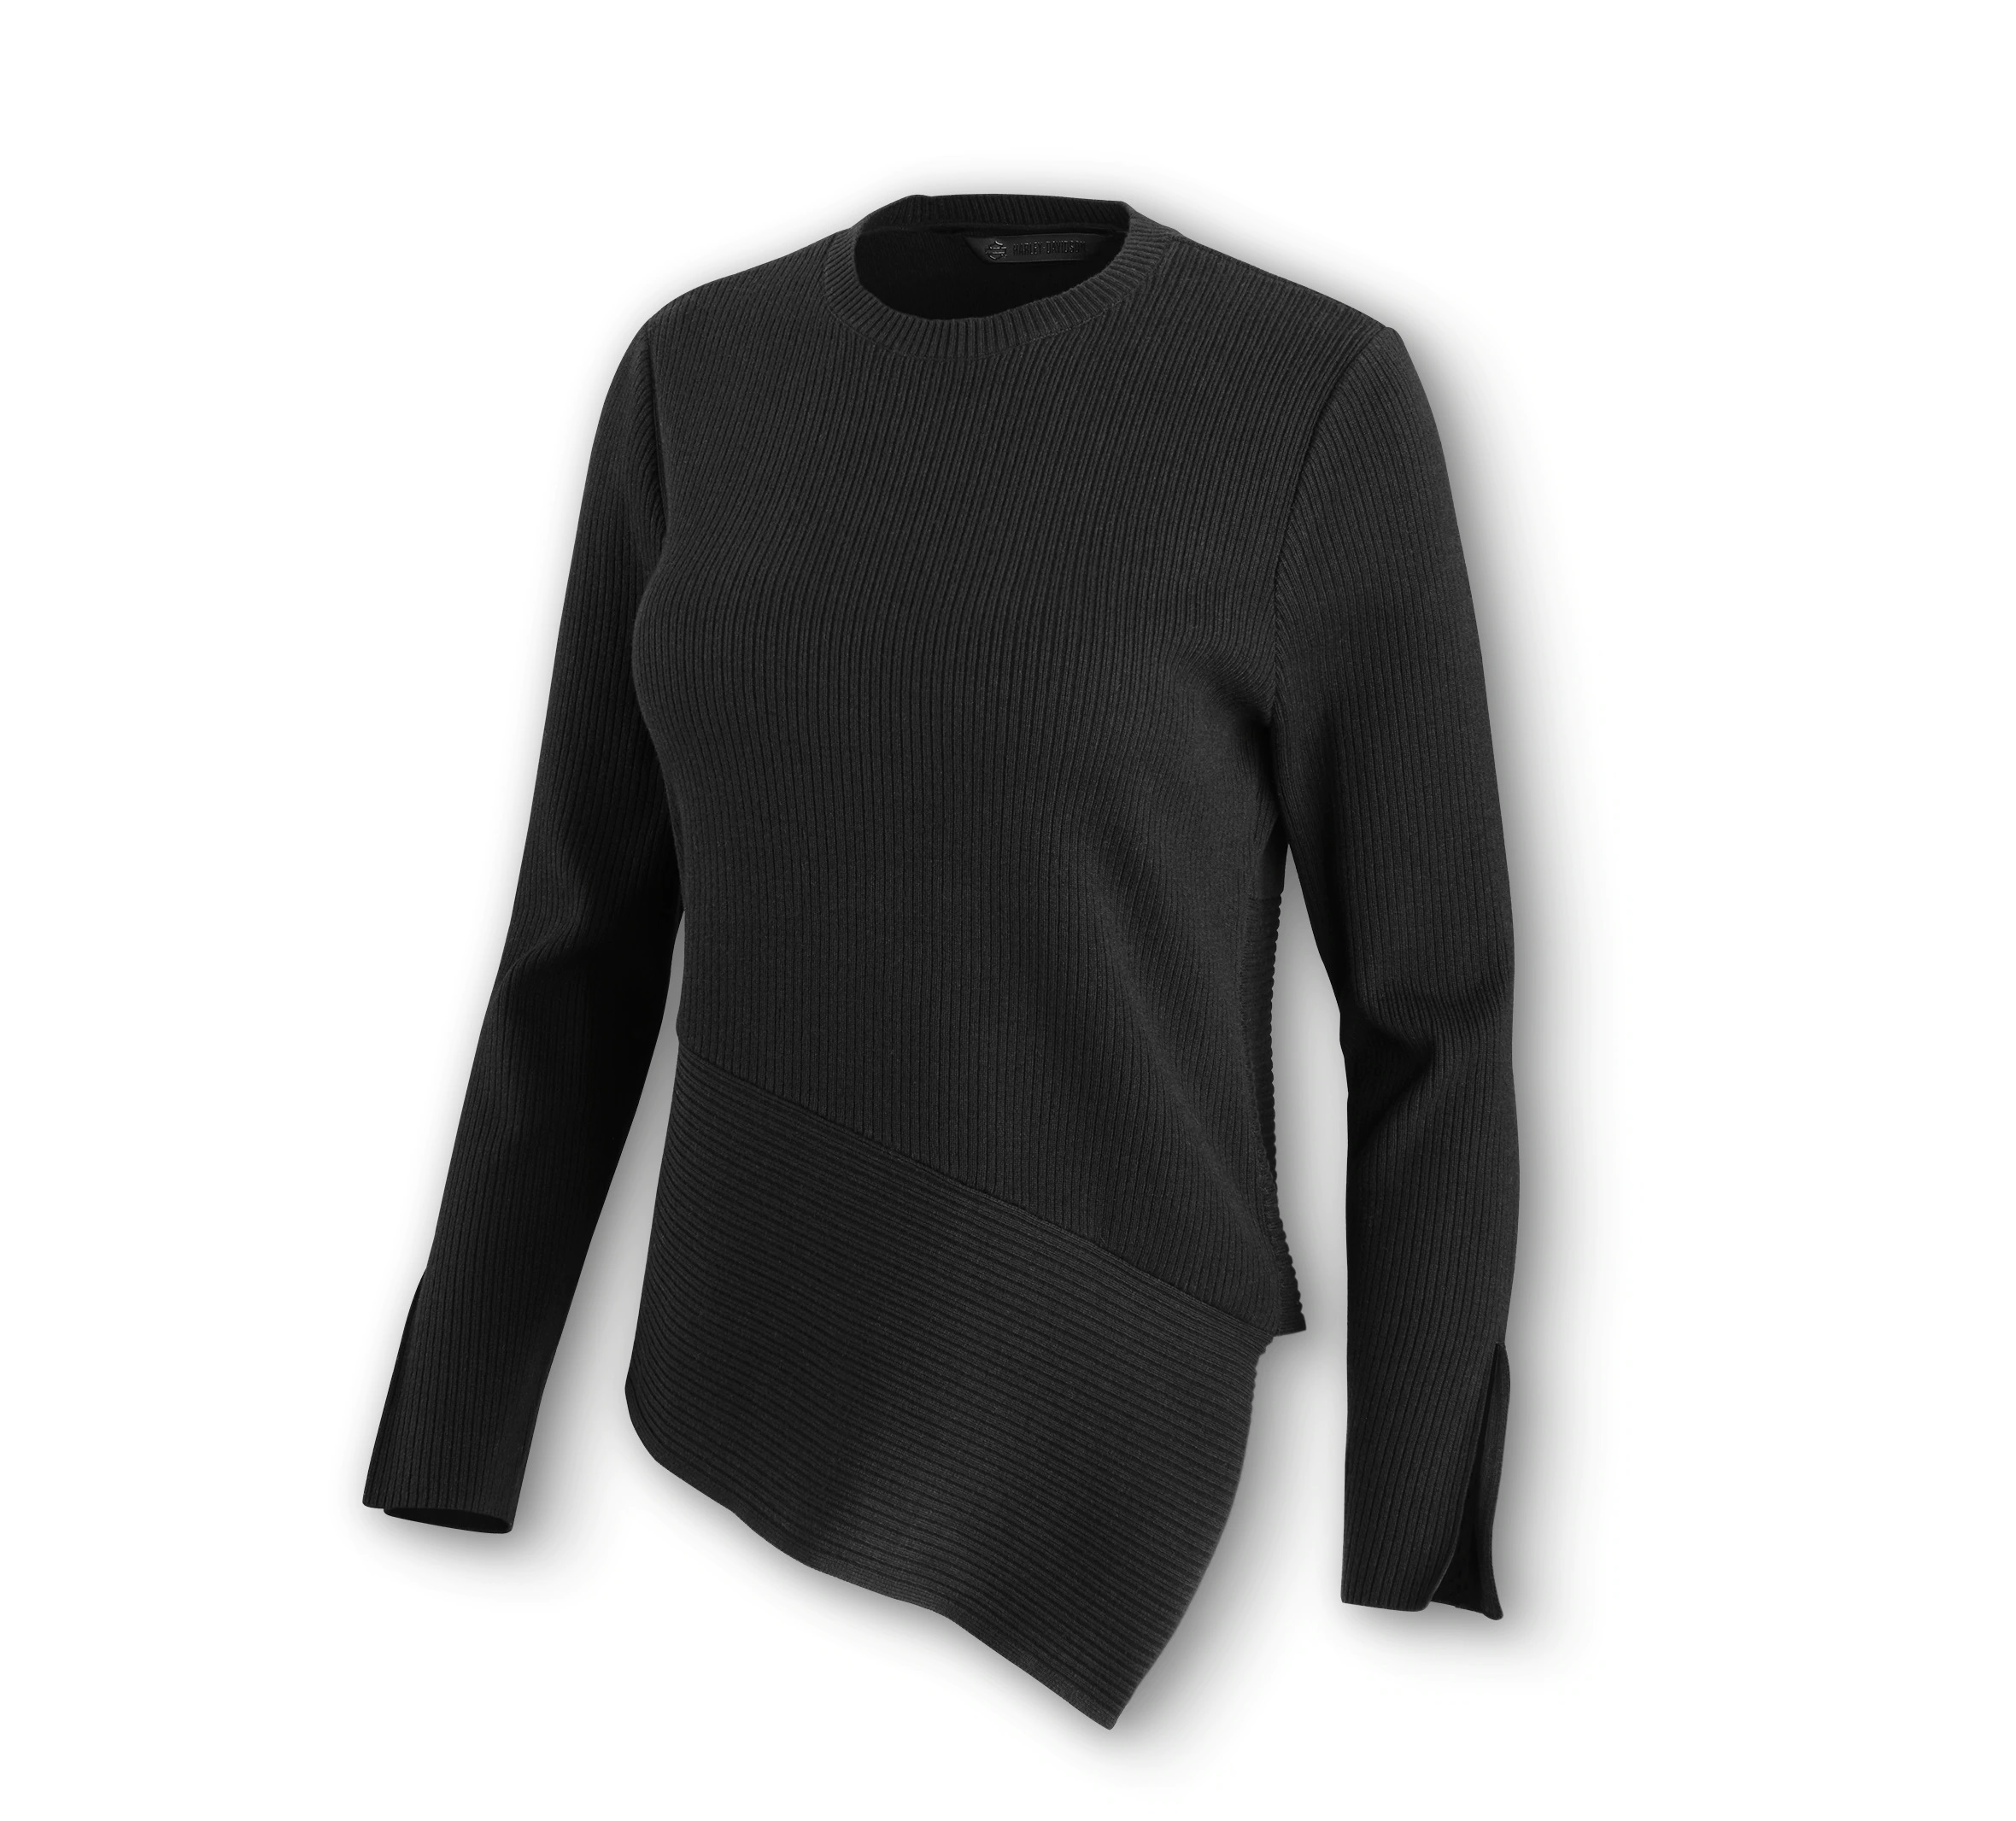 Harley-Davidson Women's Asymmetrical Hem Sweater